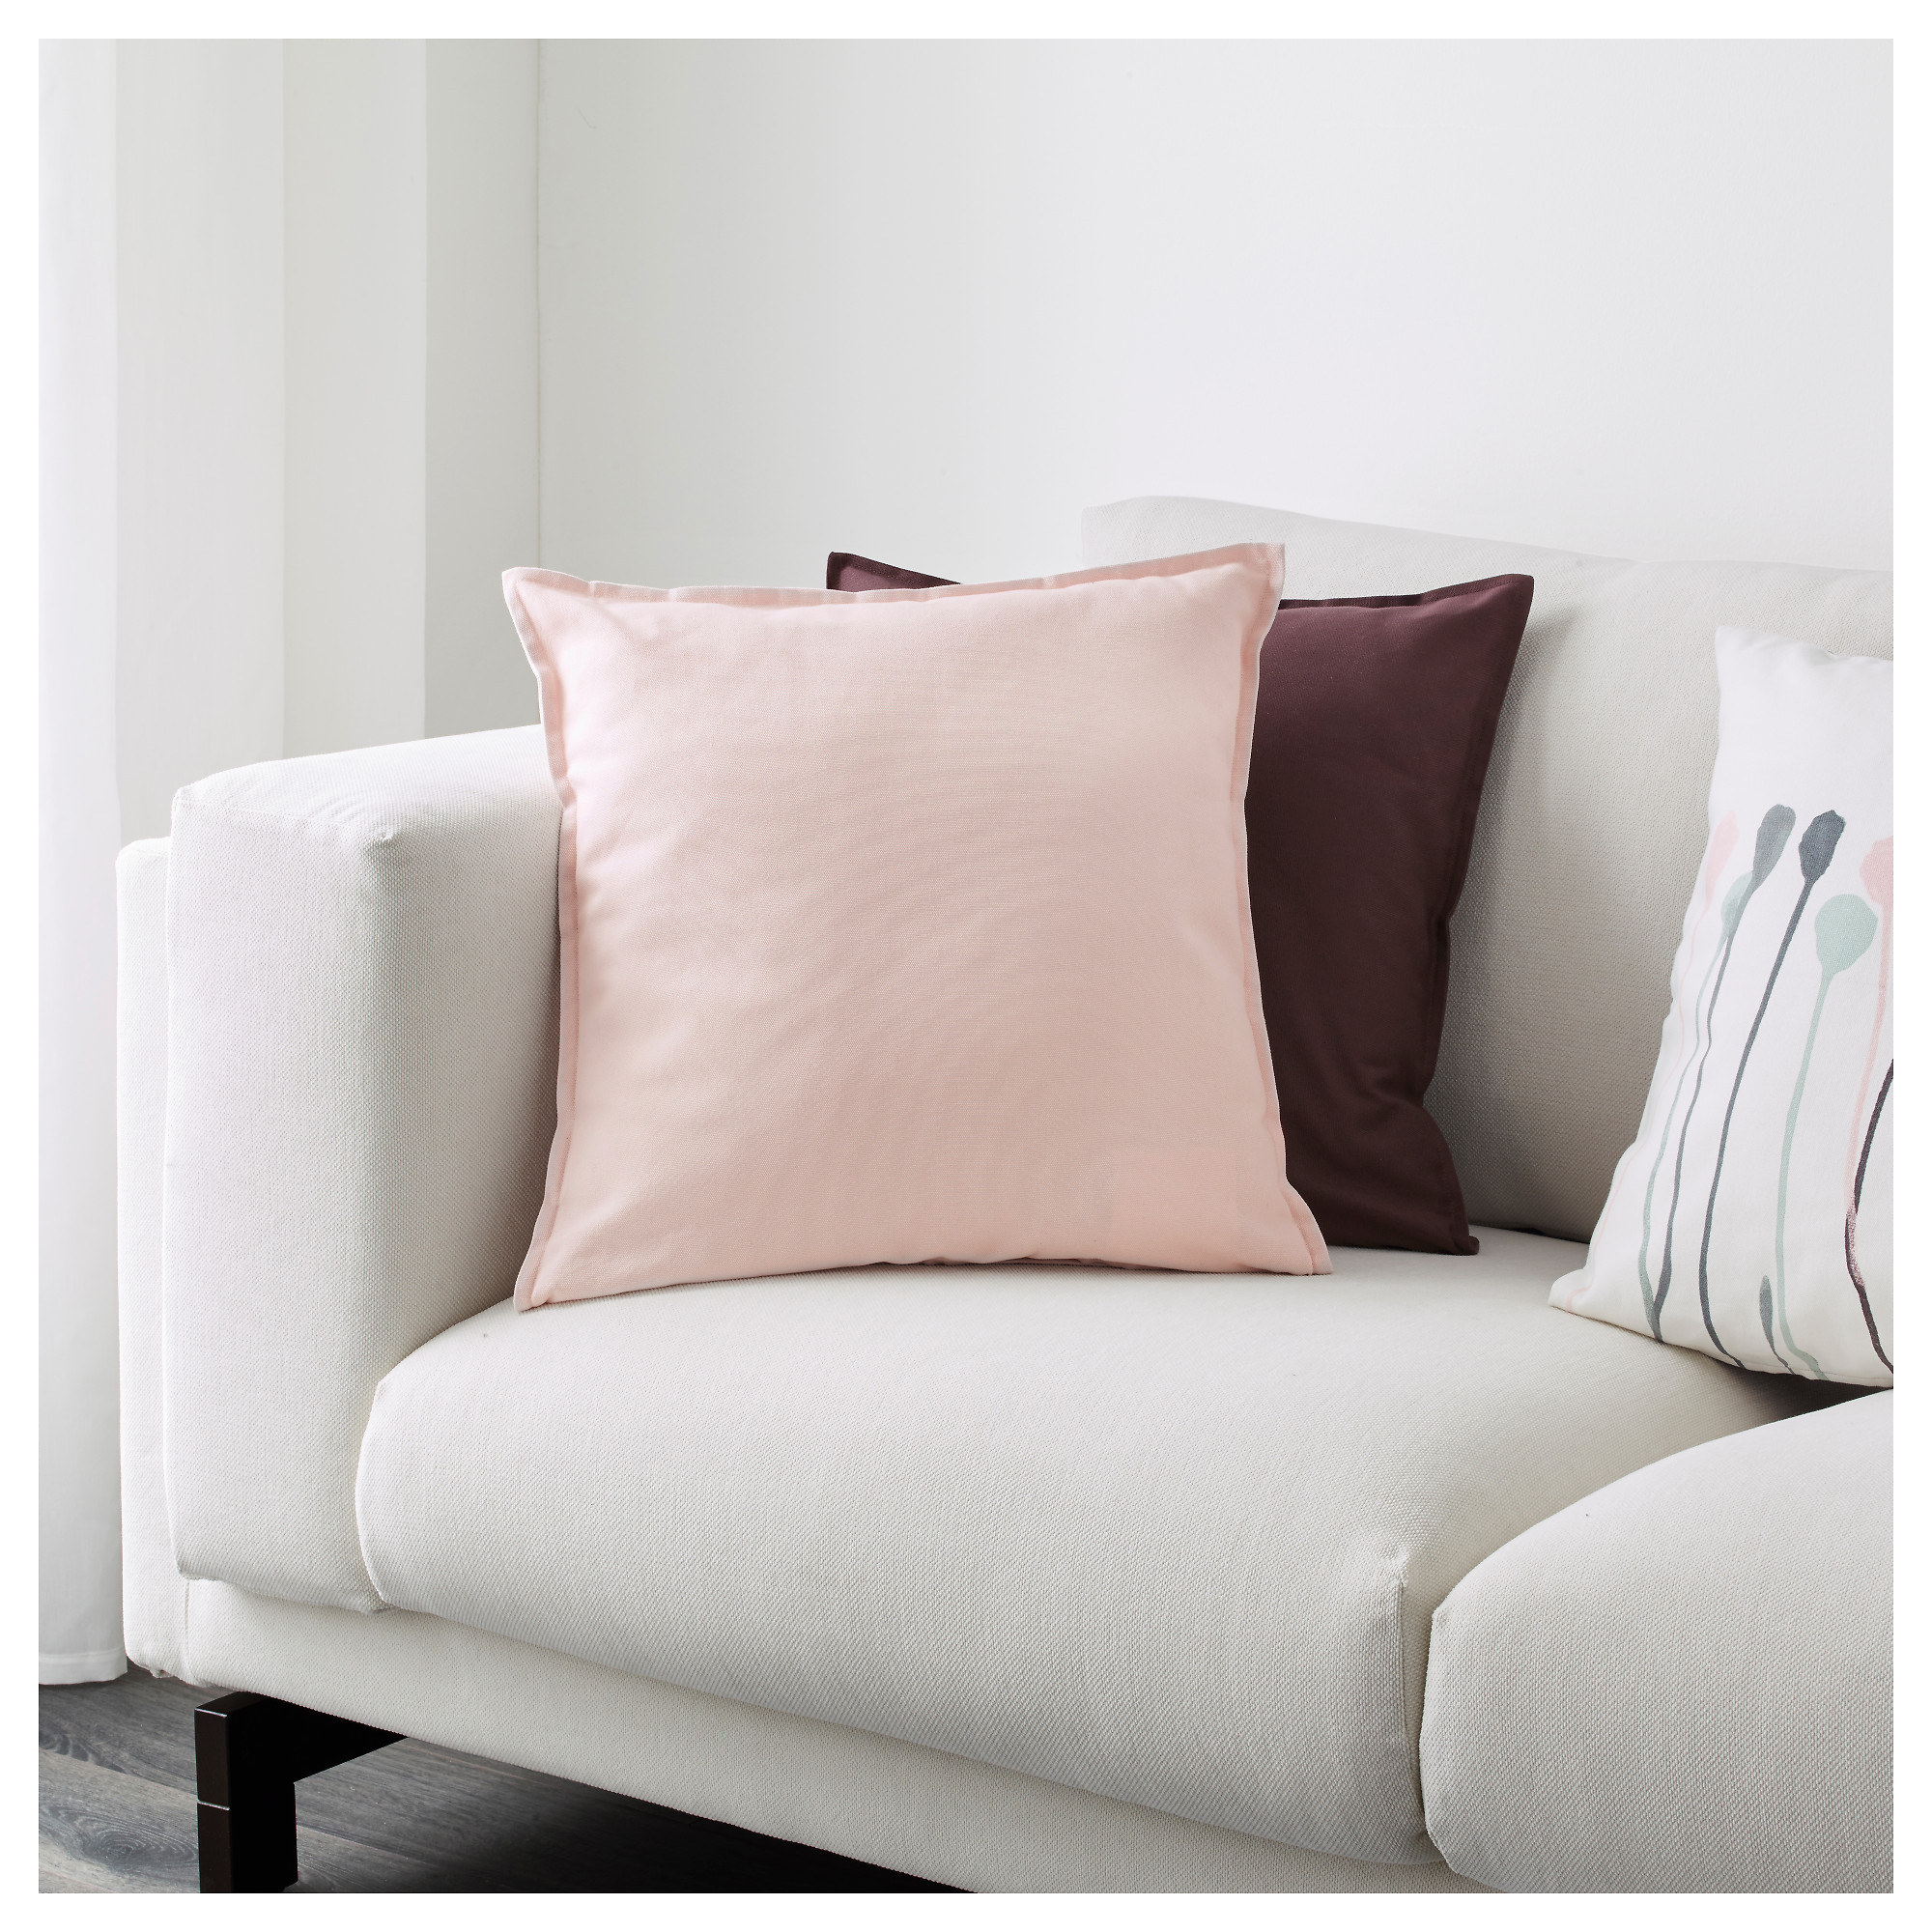 th pillow pillows products cover of on full aebf for blue pale pink sofa centeryellow throw yellow size x sofas ikat